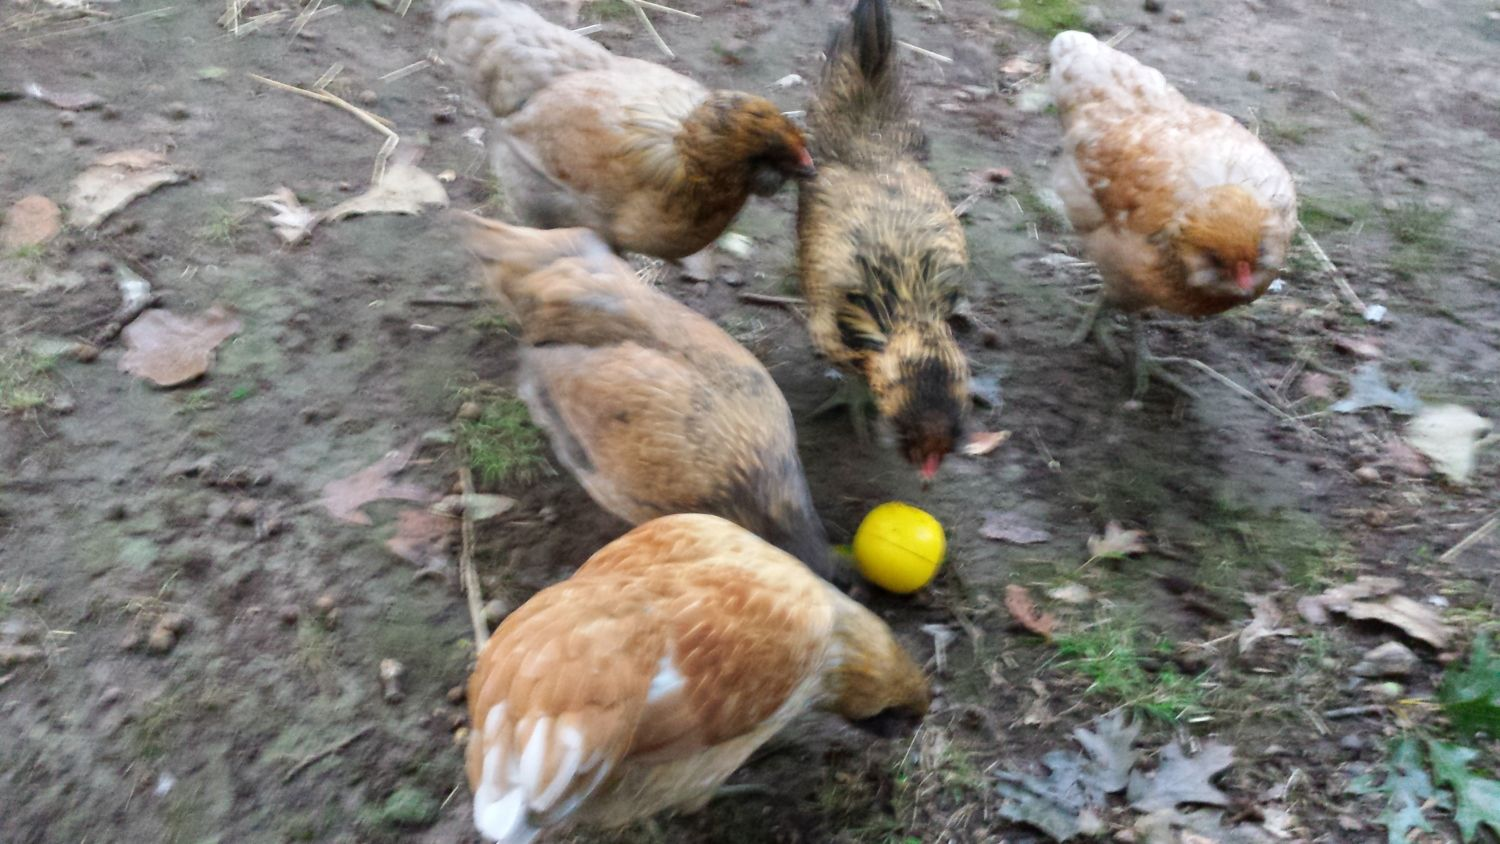 They all LOVE to play with the new chicken toy! I fill it with goat feed